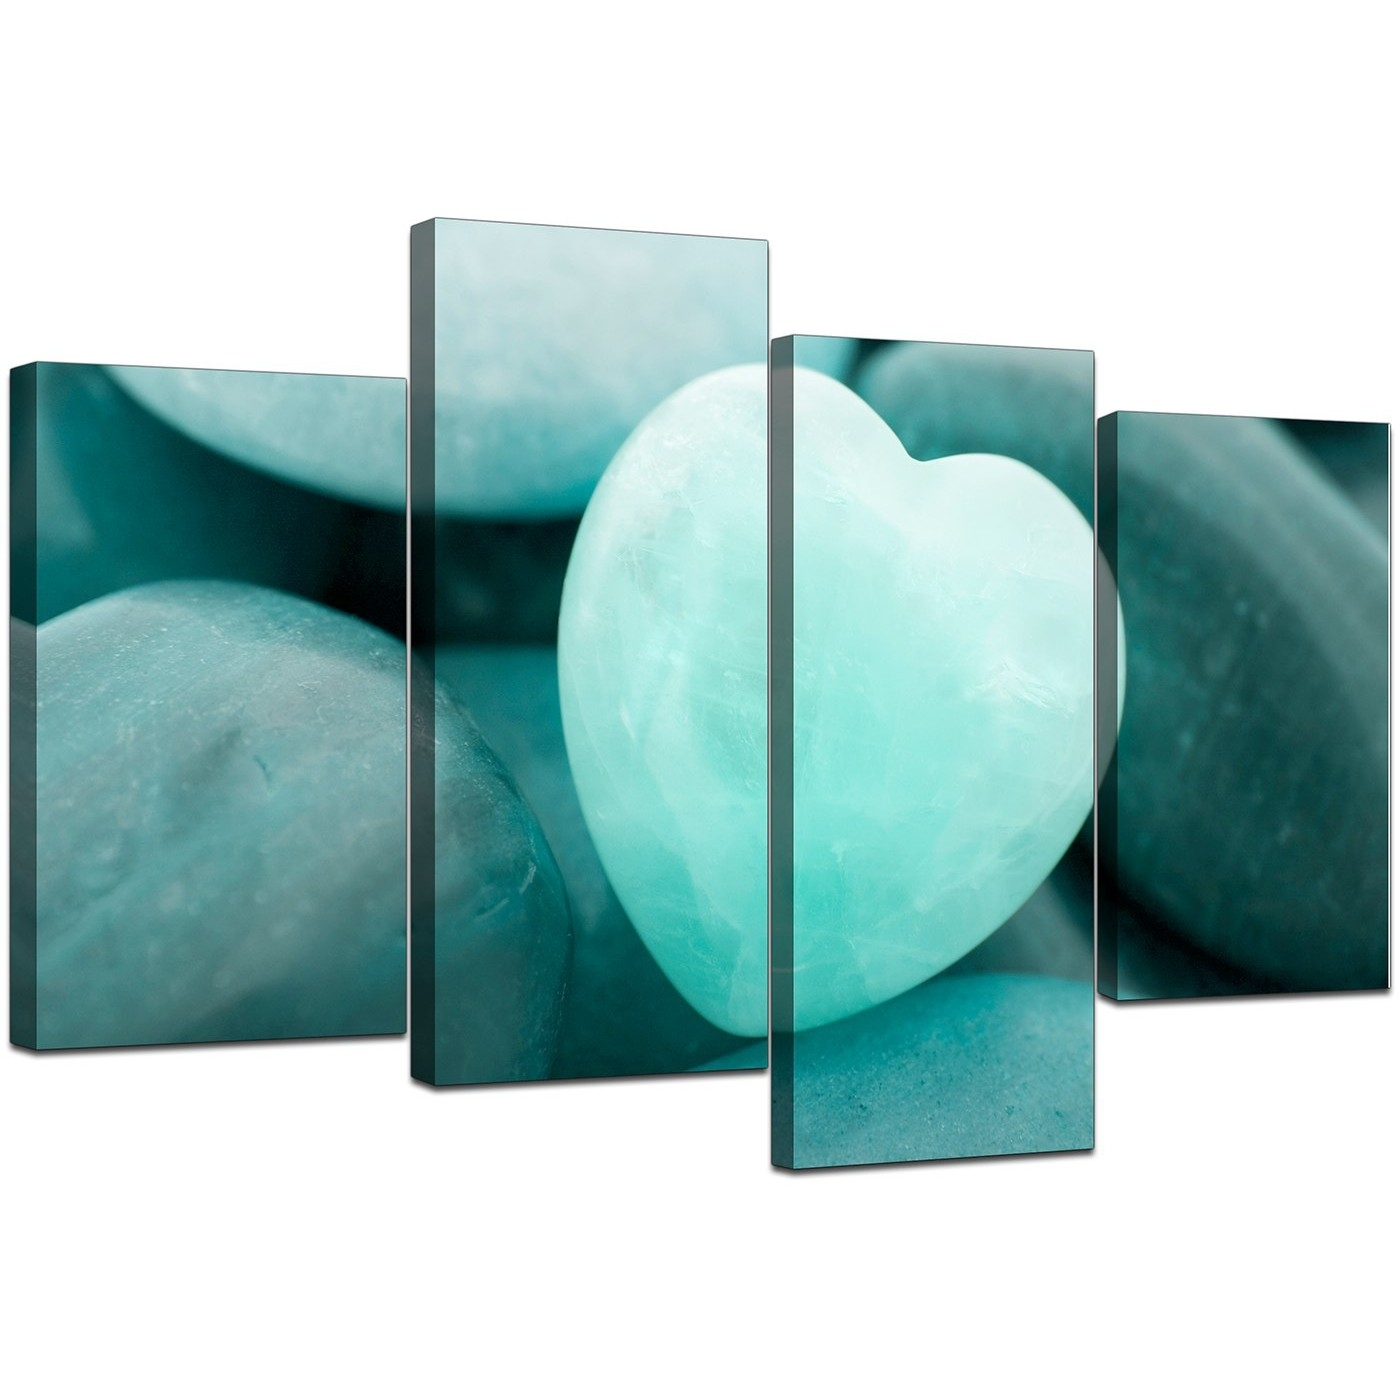 Canvas Wall Art Of Heart In Teal For Your Bedroom in Teal Wall Art (Image 6 of 20)